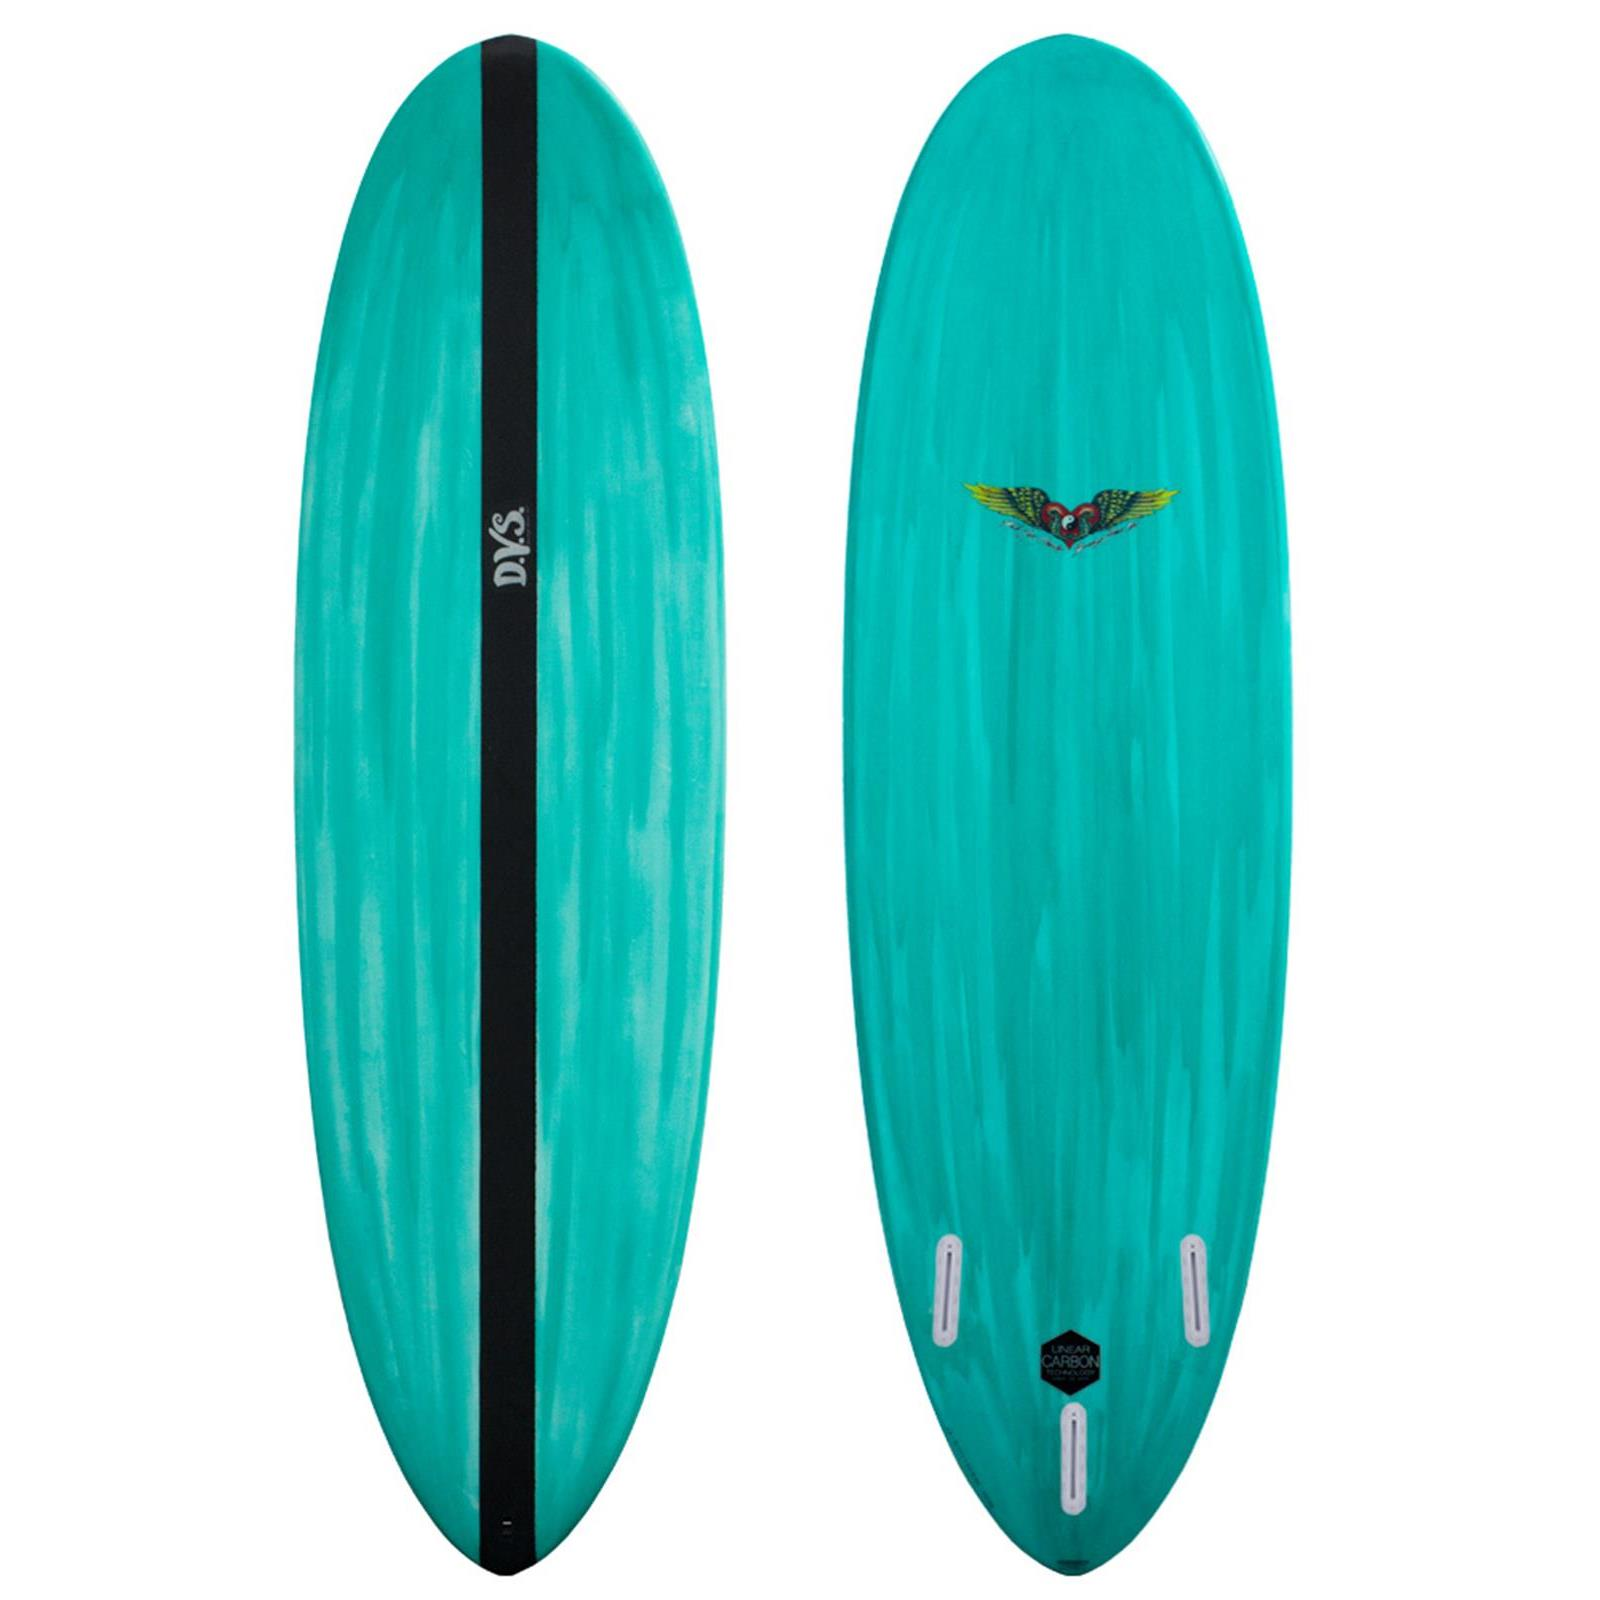 Surfboard DVS - Micro 6.0 LCT Futures